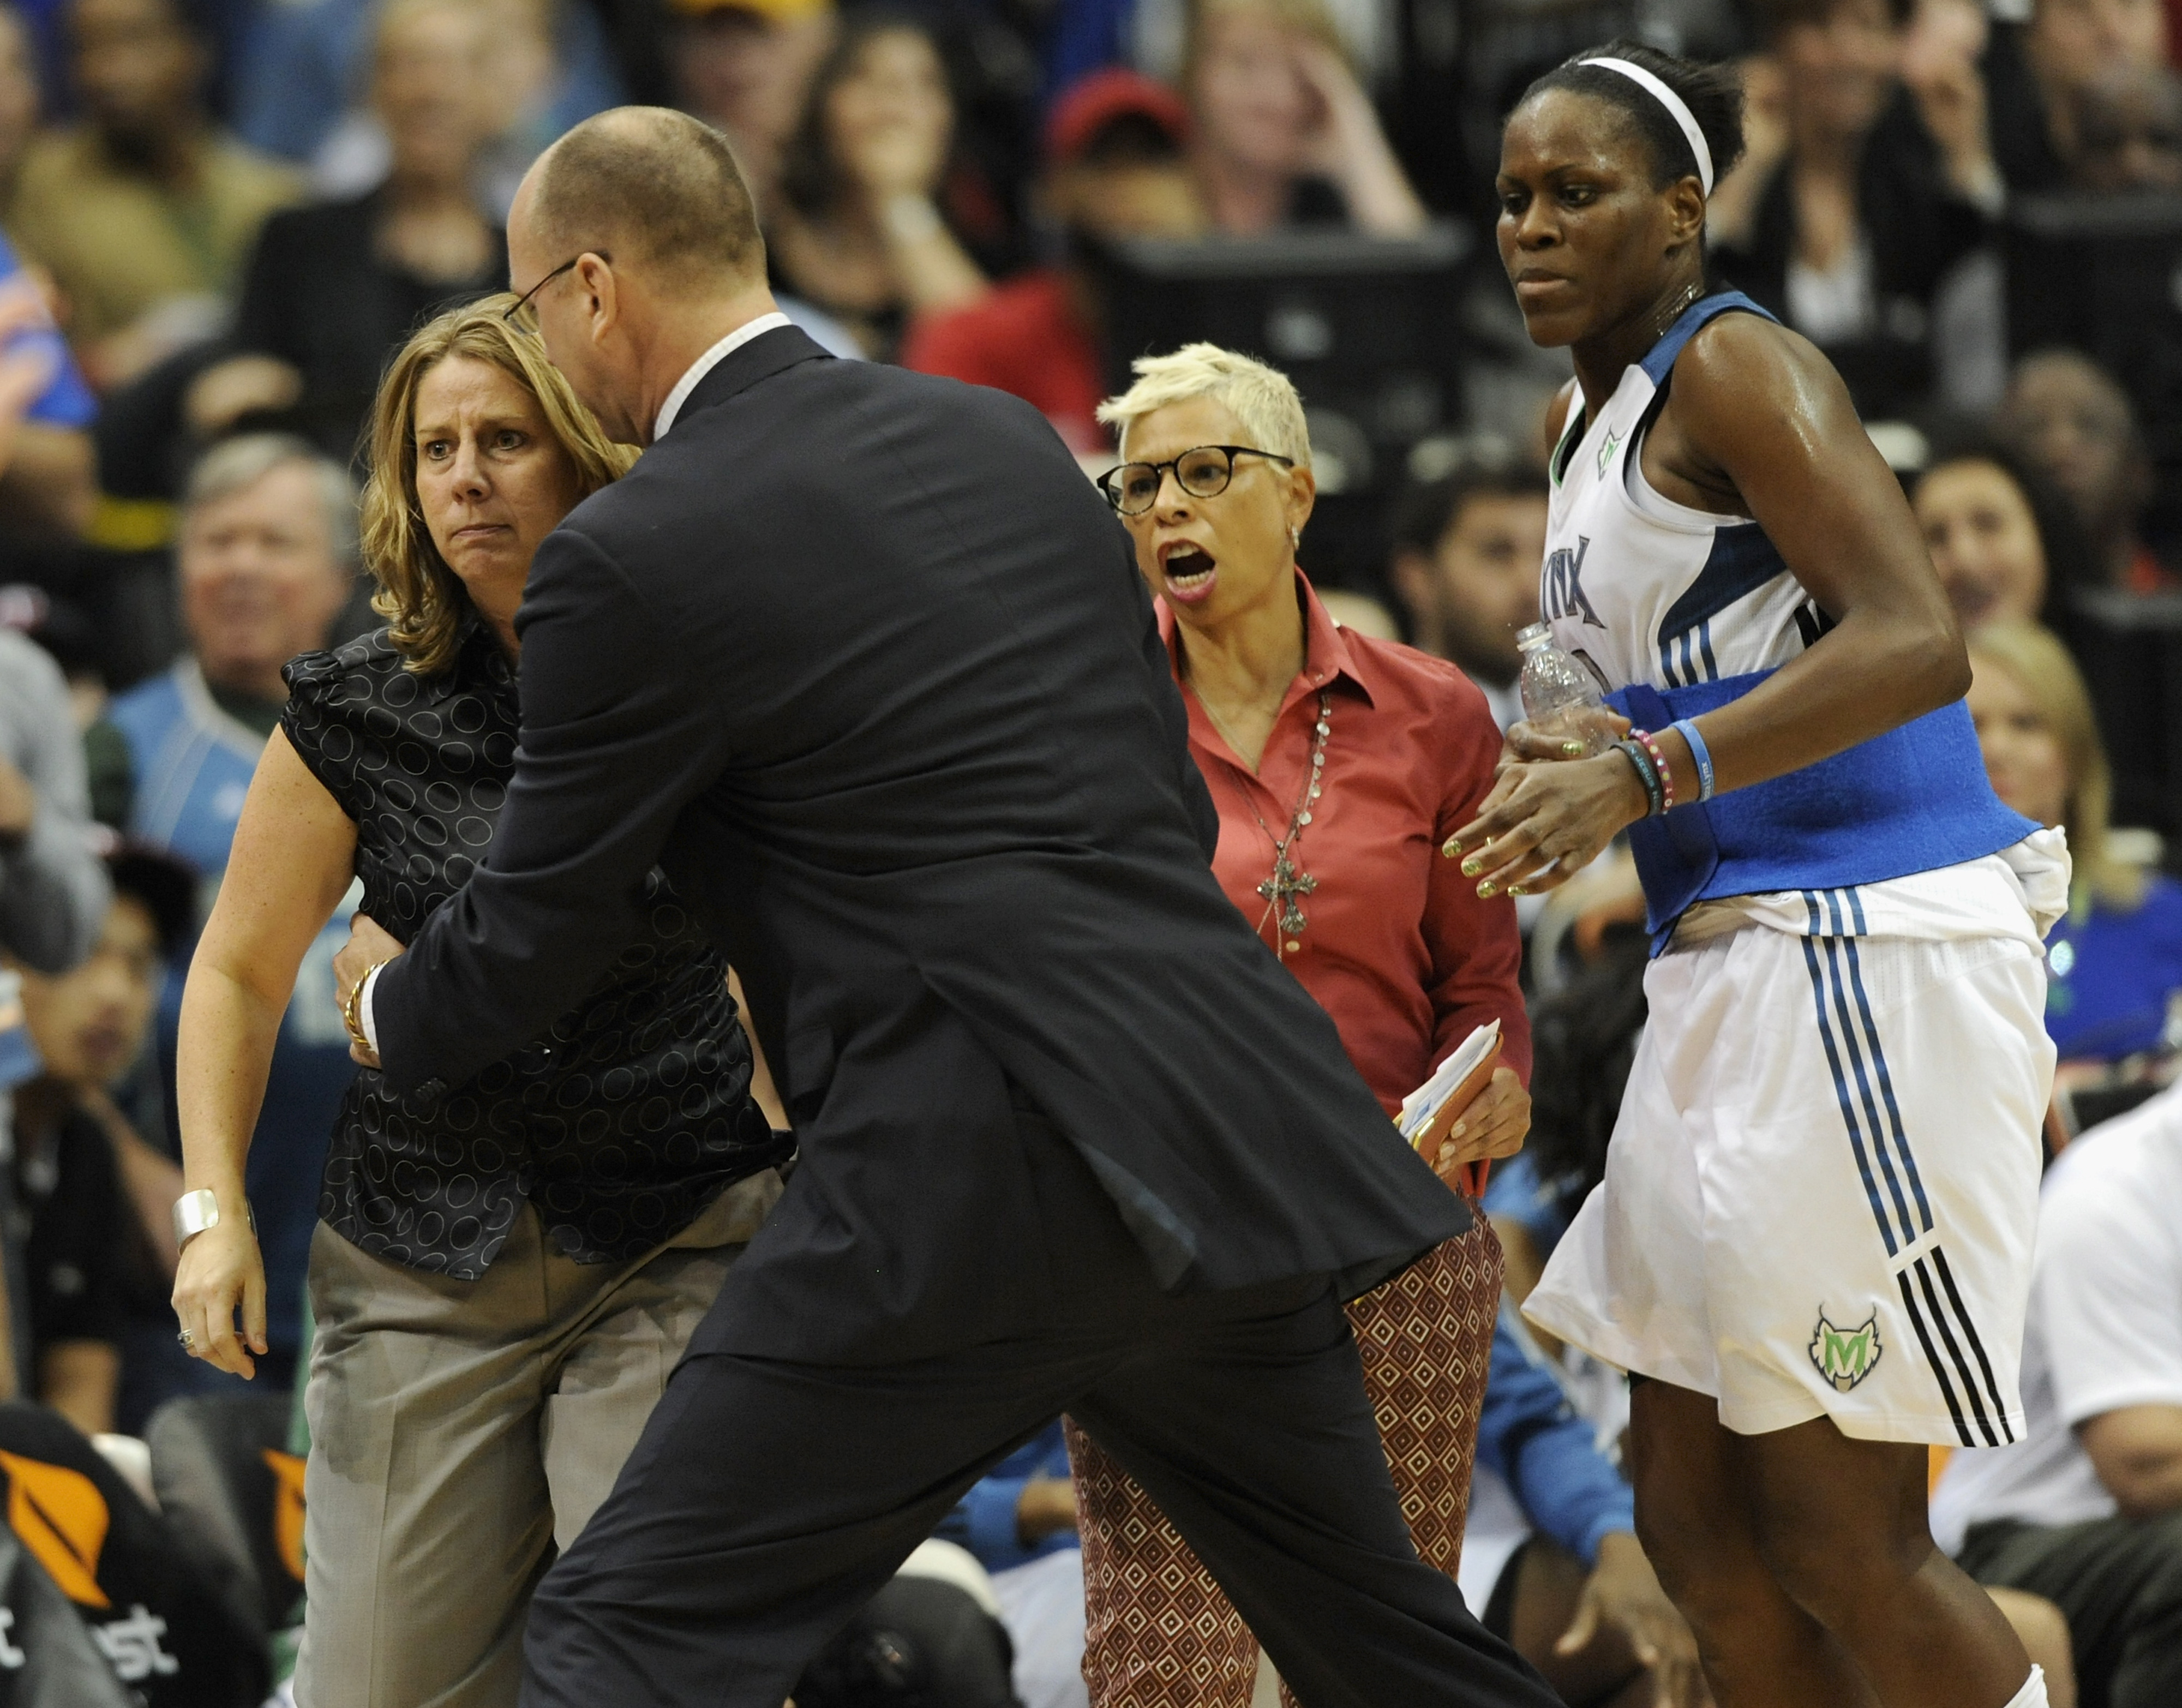 Coach Reeve unleashed the fury in Game 2 to help her team settle a score against the Fever (and the refs), but will she have to do it again tonight?